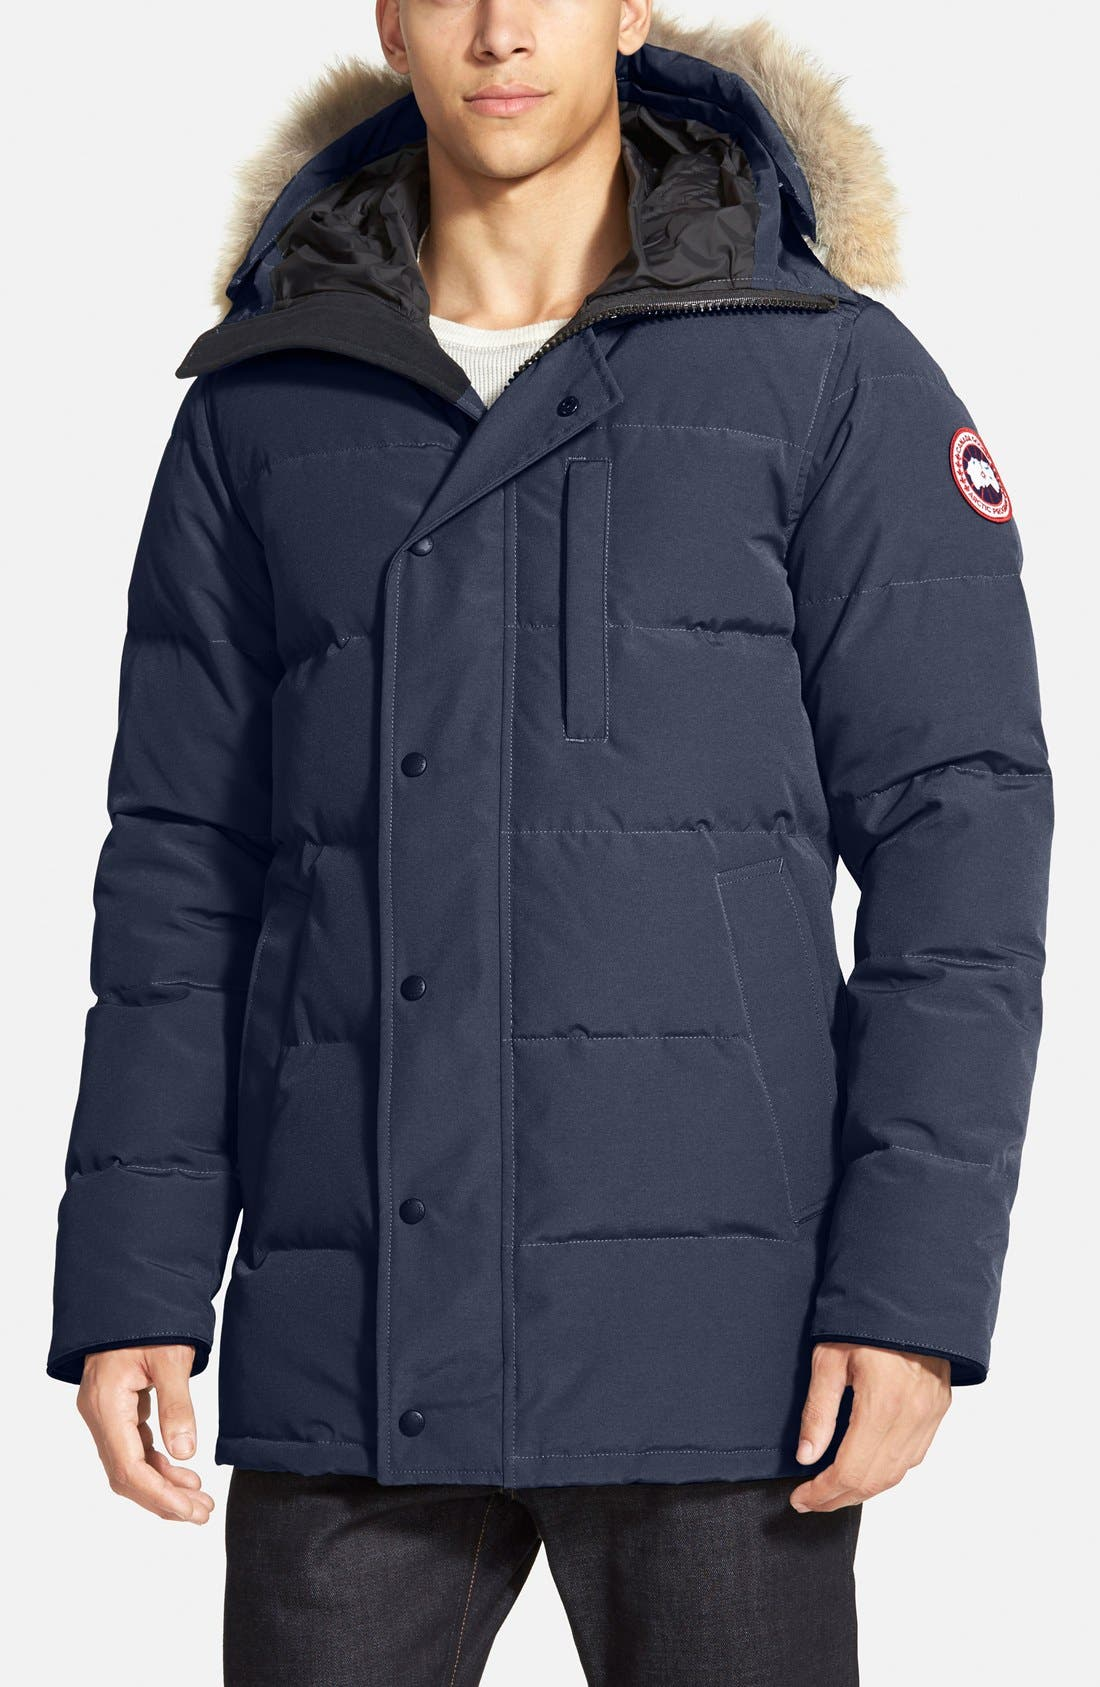 Parka Jackets for Men | Nordstrom